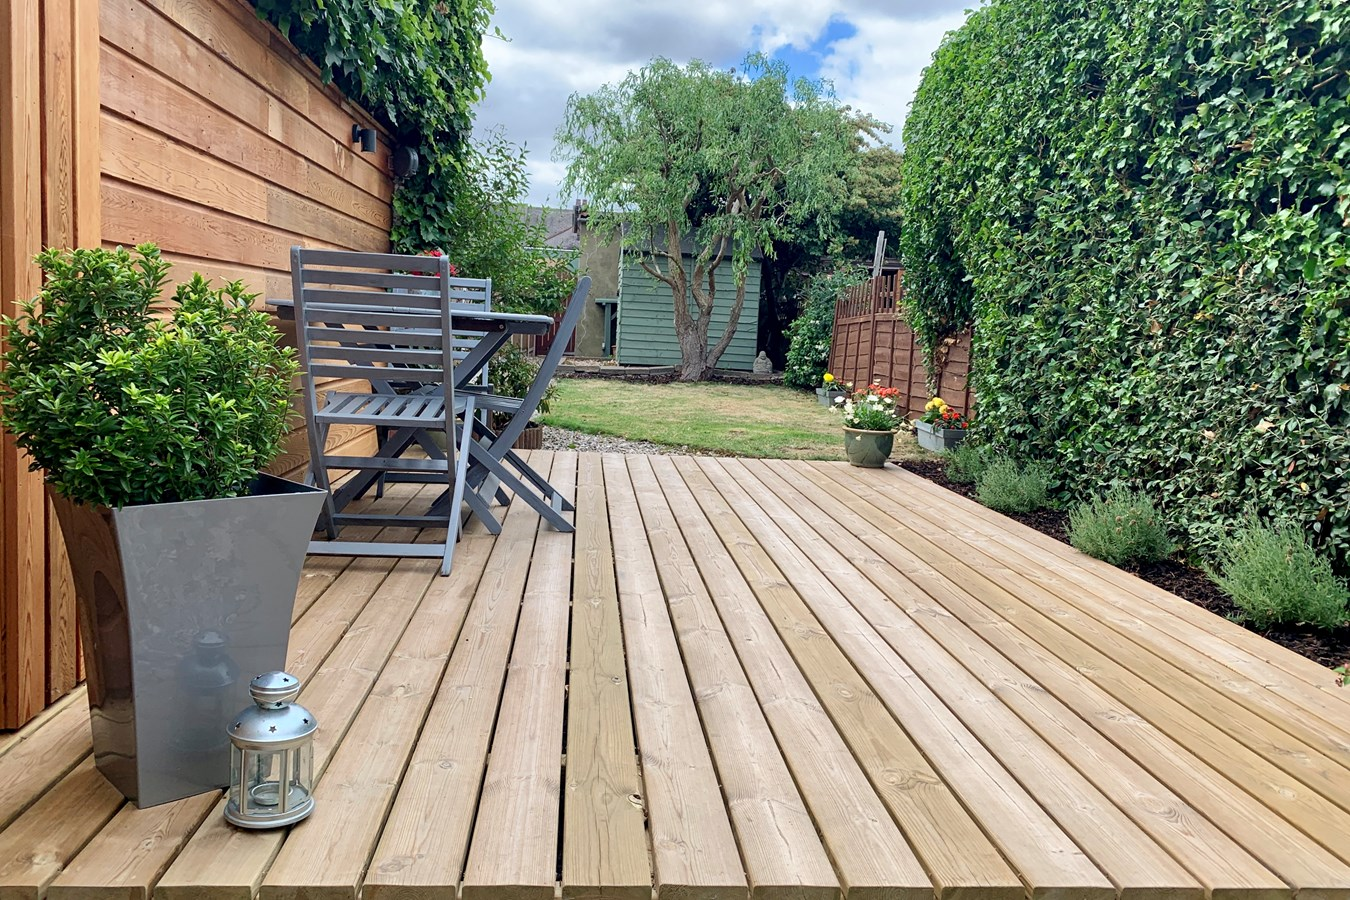 2 Bedroom Terraced House For Sale In Chelmsford